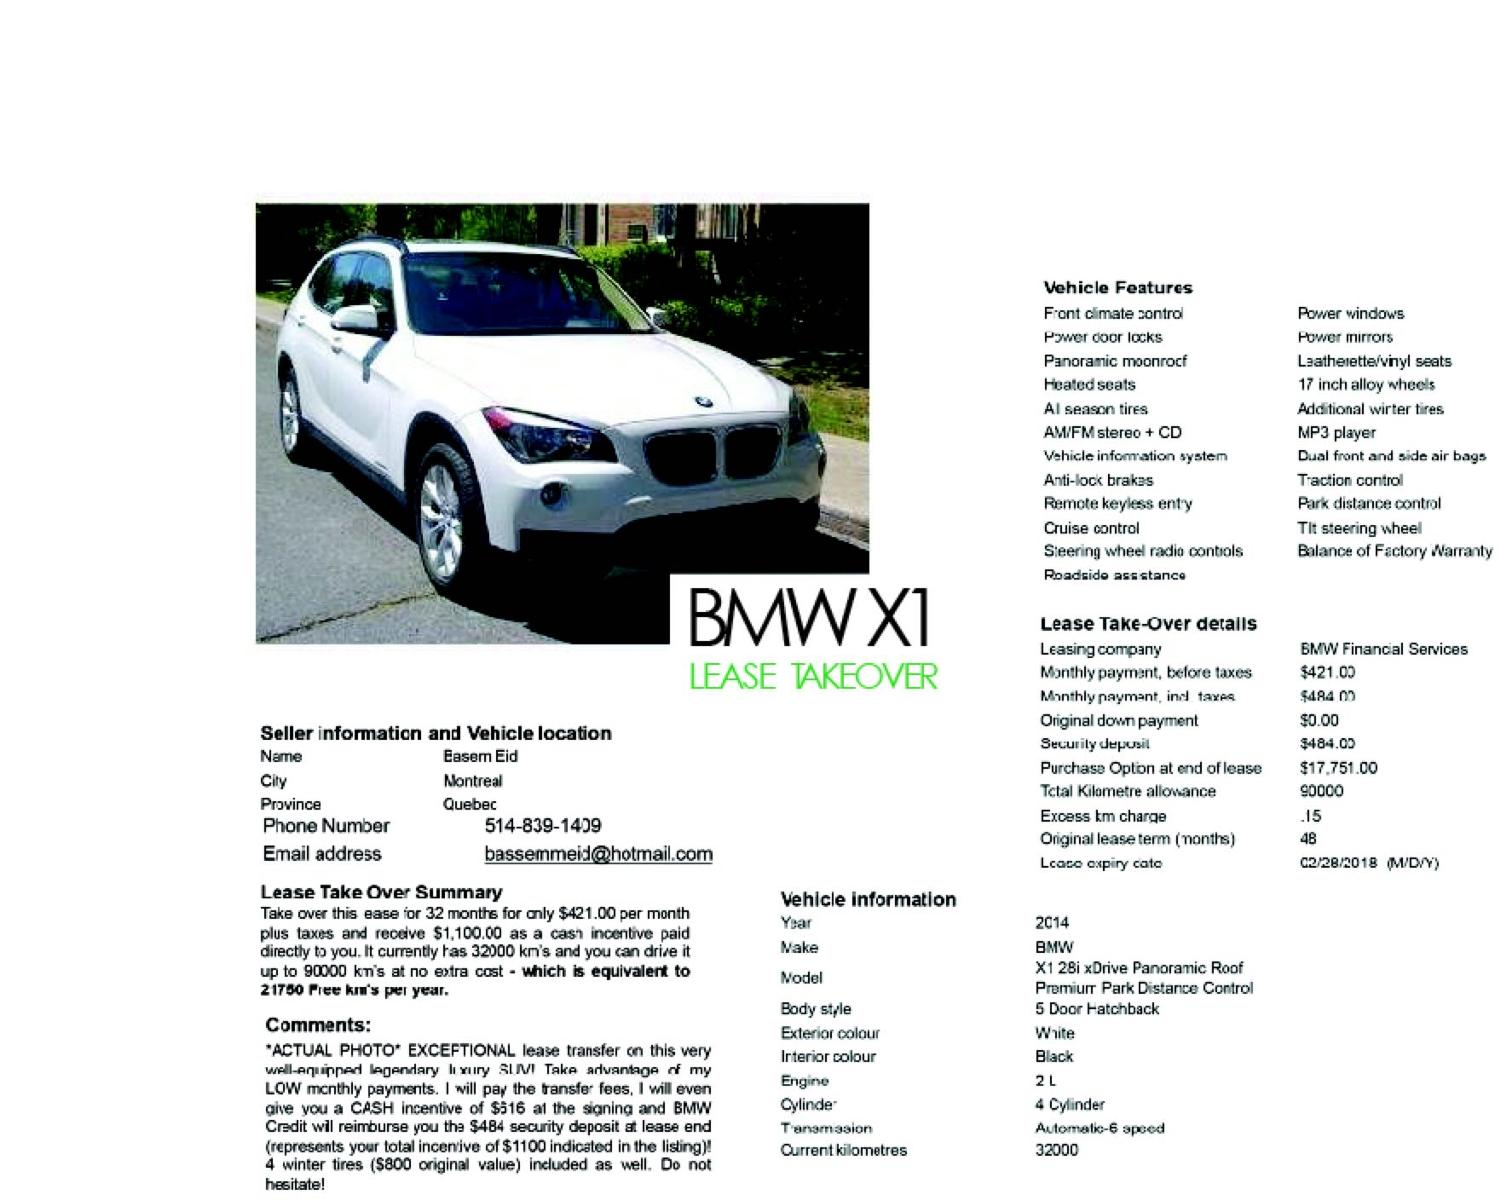 Find more Bmw X1 Lease Take Over for sale at up to 90% off